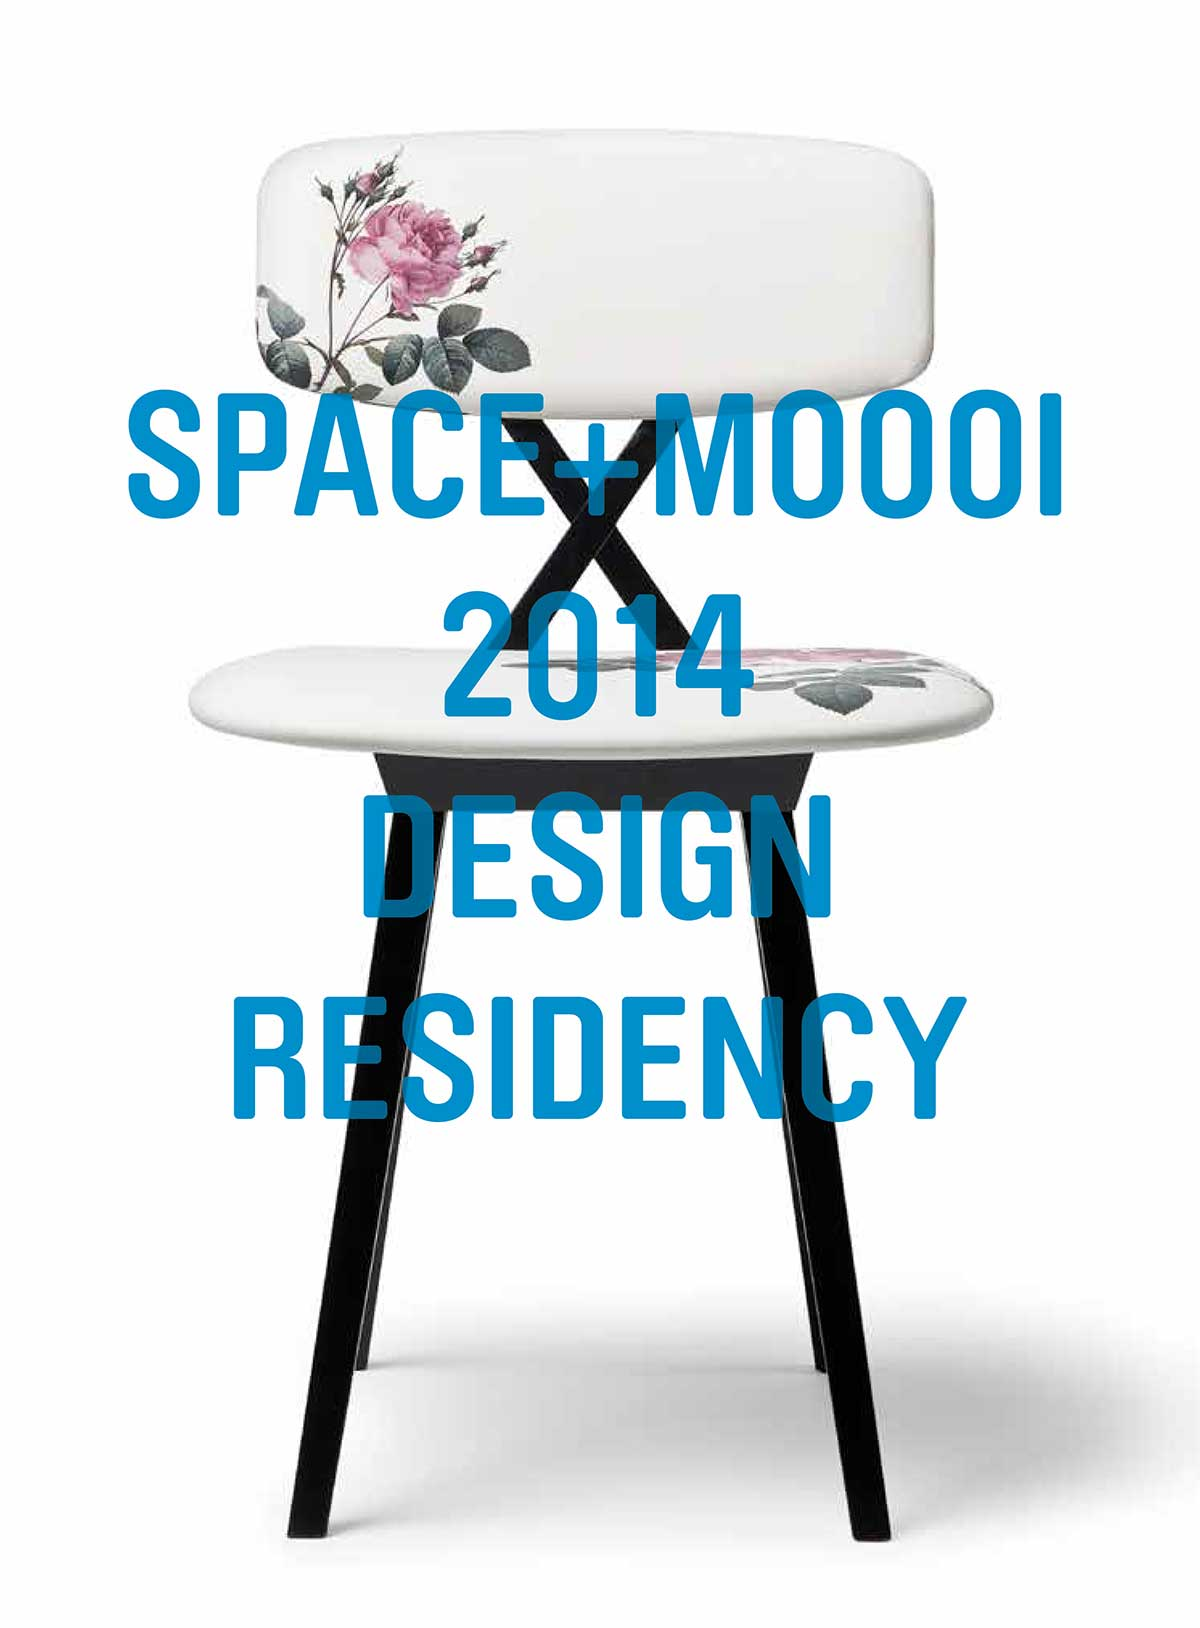 Space Furniture + Moooi 2014 Design Residency | Yellowtrace.